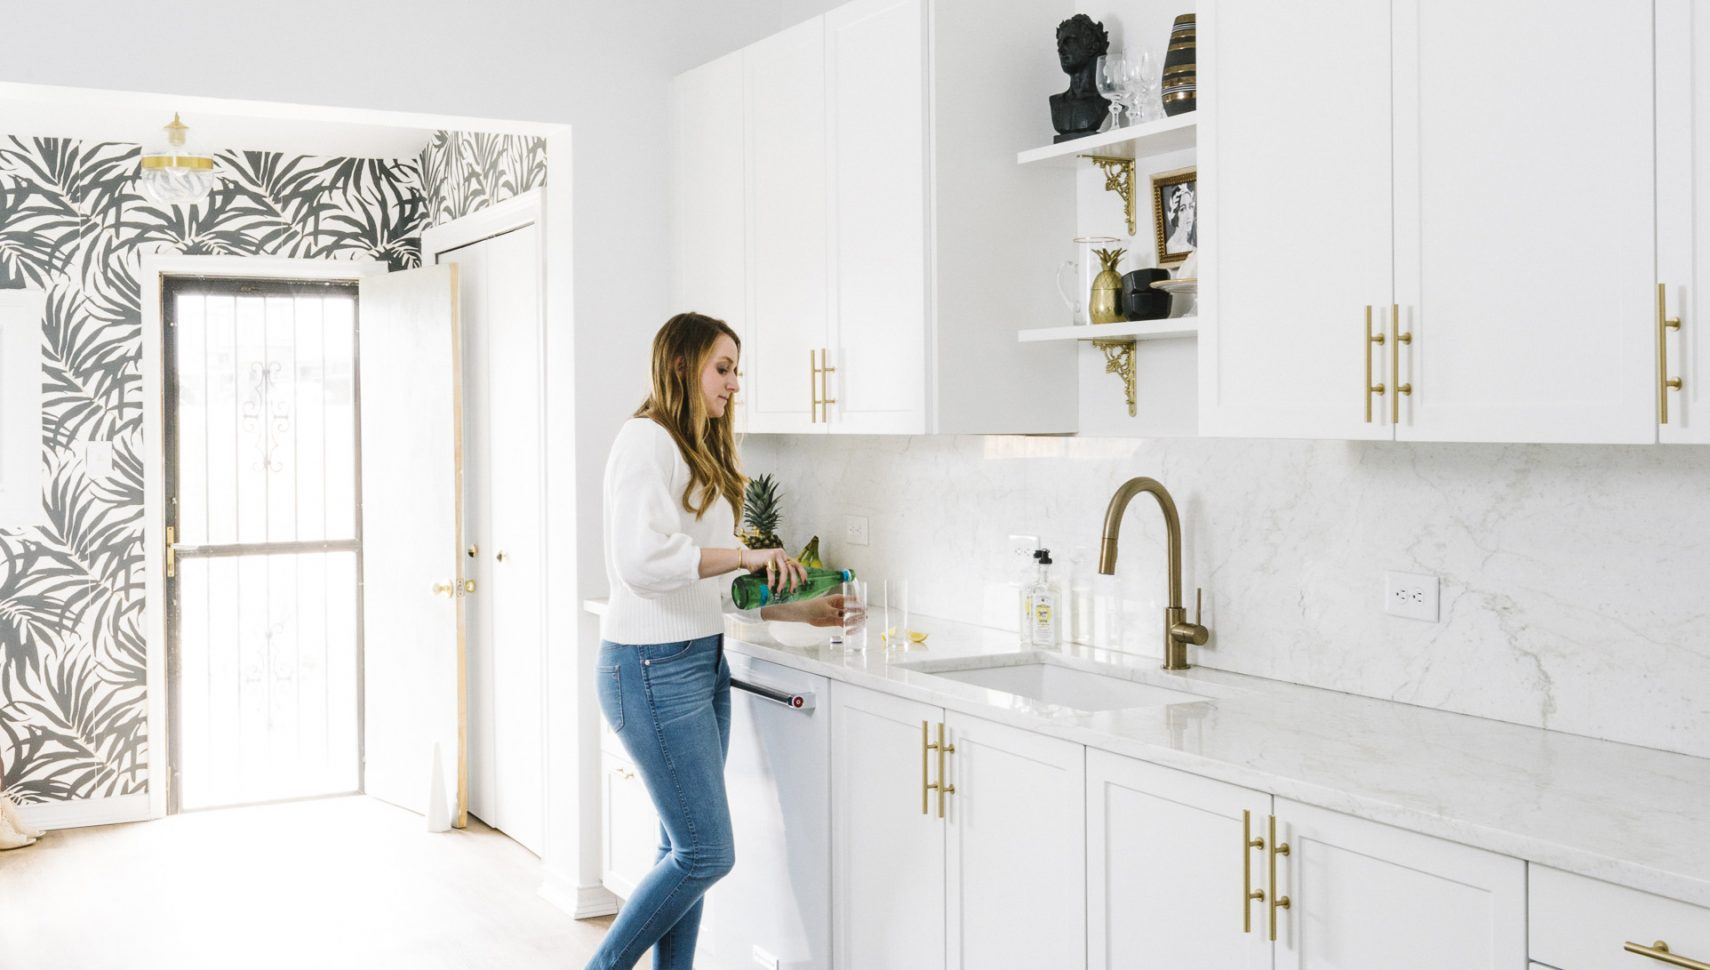 The Black & White Abode Part 6: The Kitchen   Havenly's Blog! on wasted space above kitchen cabinets, interior decorating above kitchen cabinets, decorating tips above kitchen cabinets,